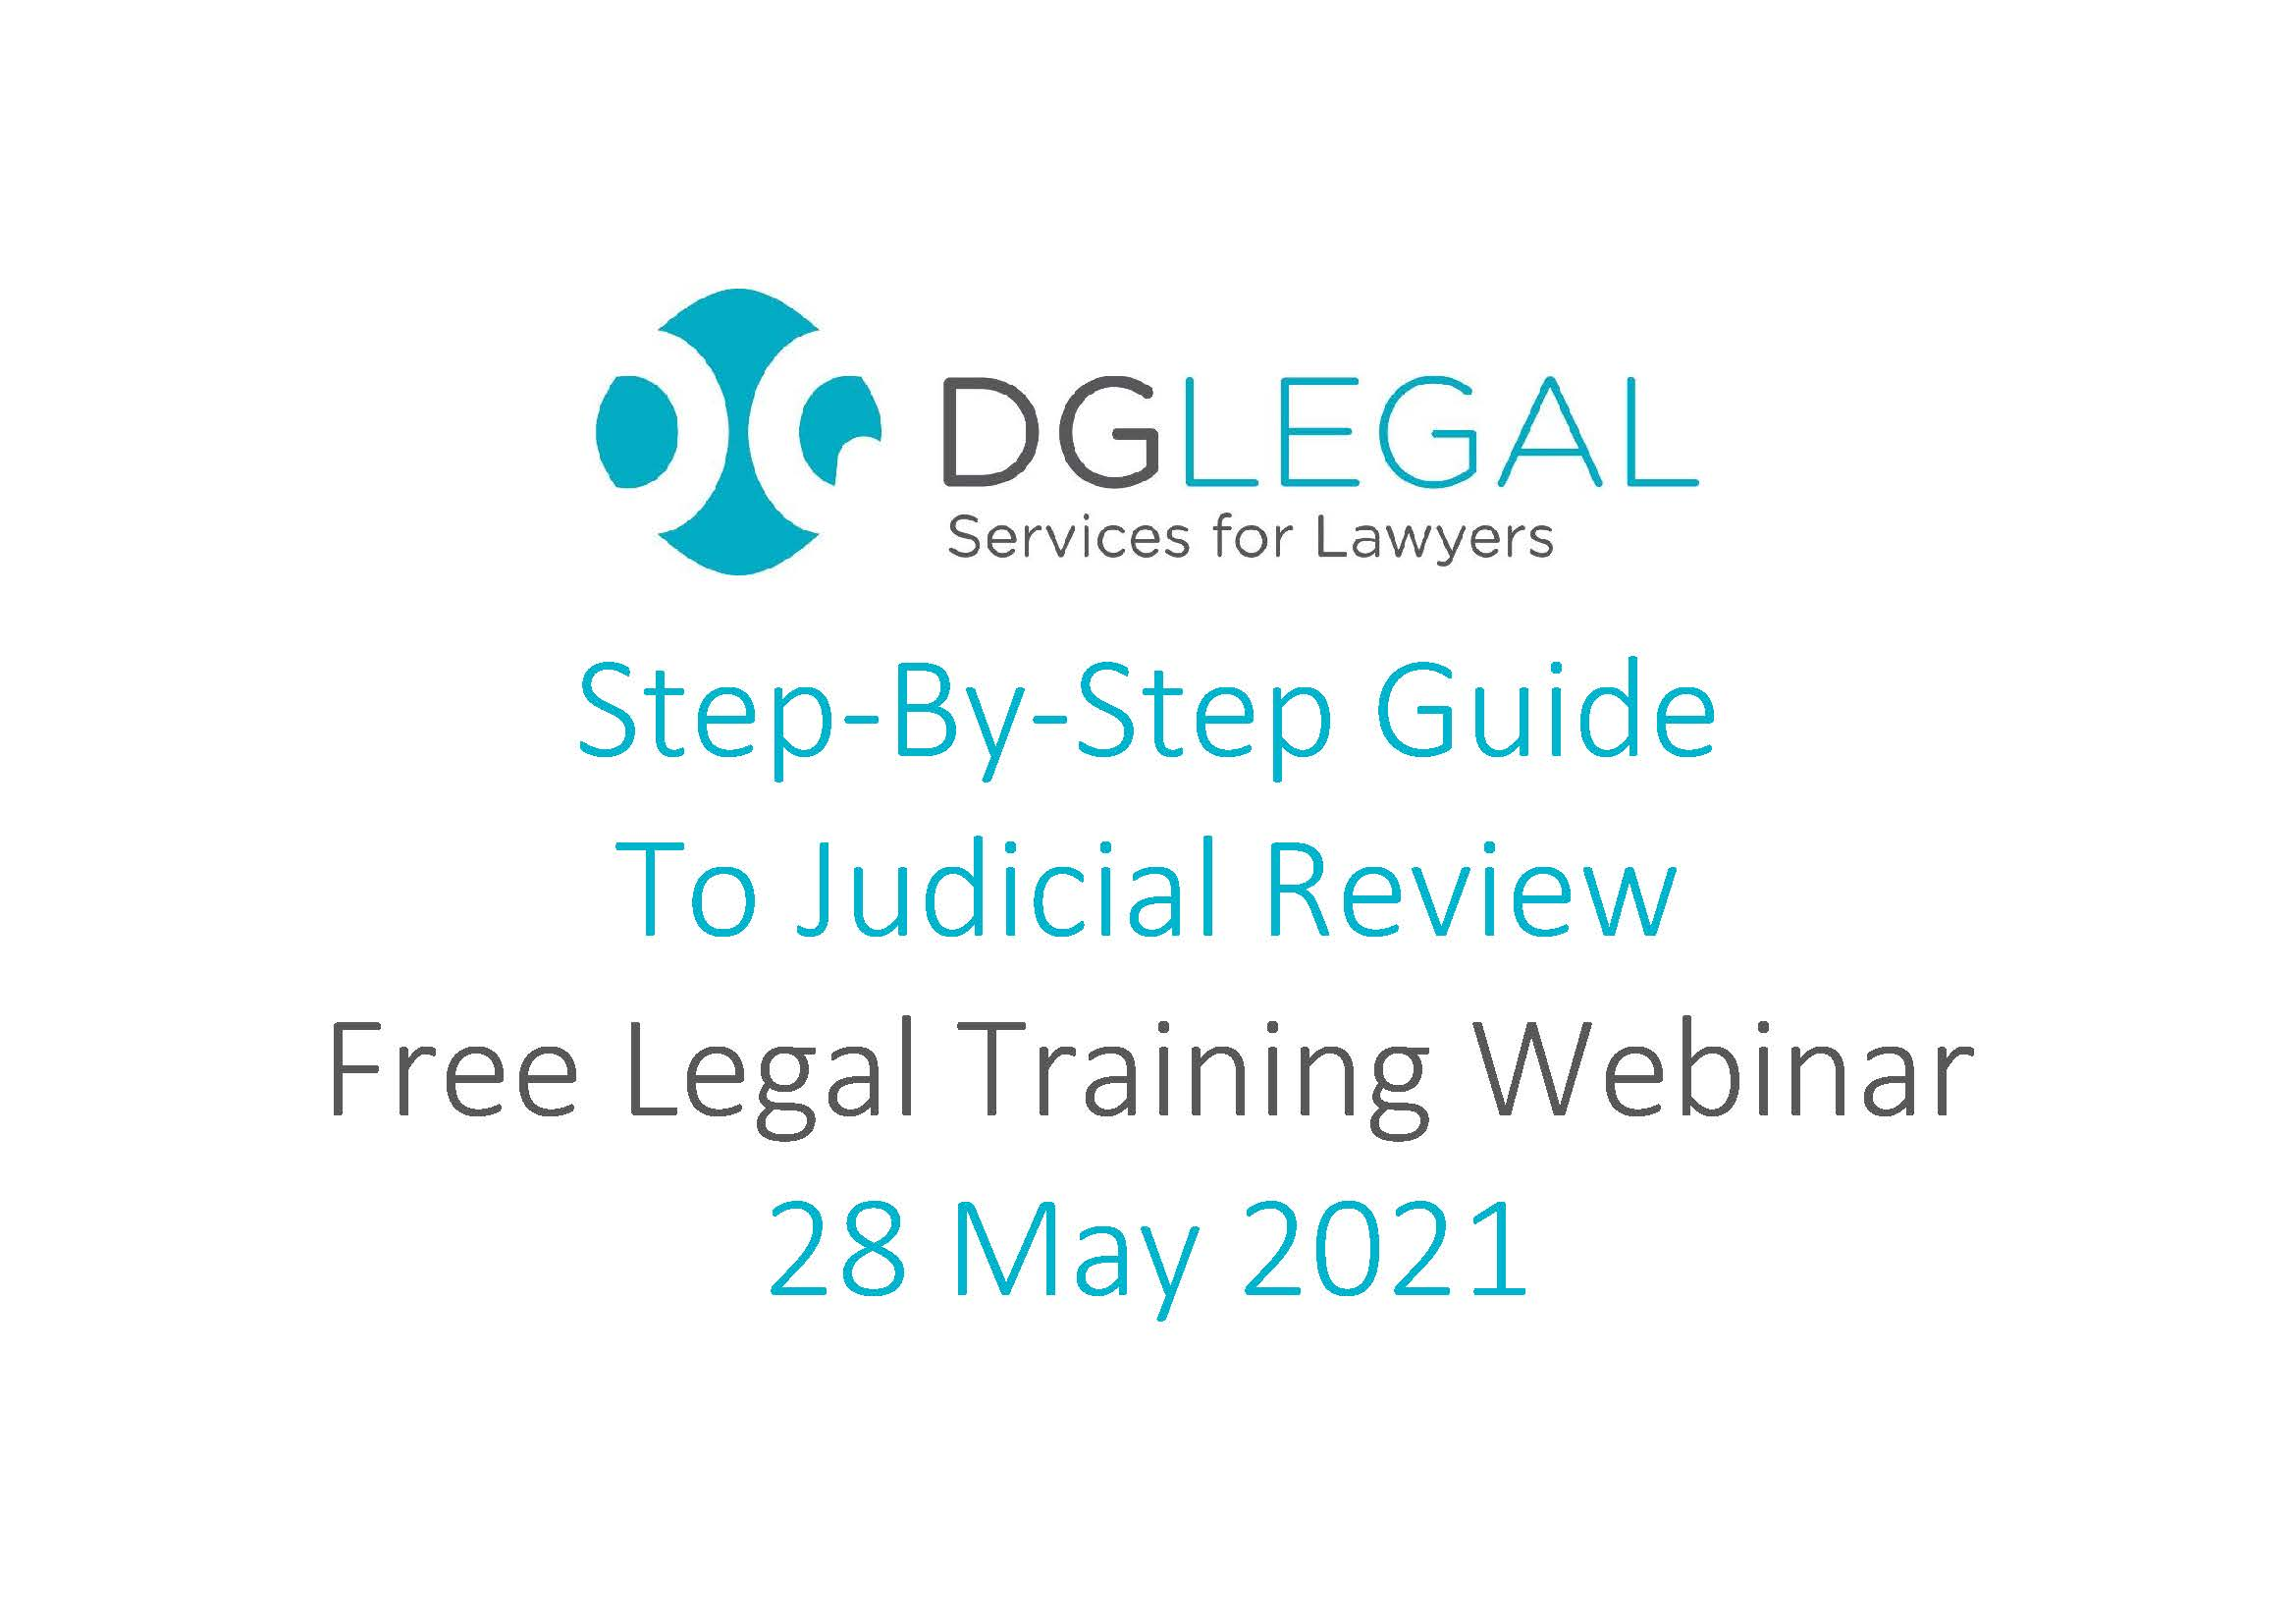 Step-By-Step Guide To Judicial Review